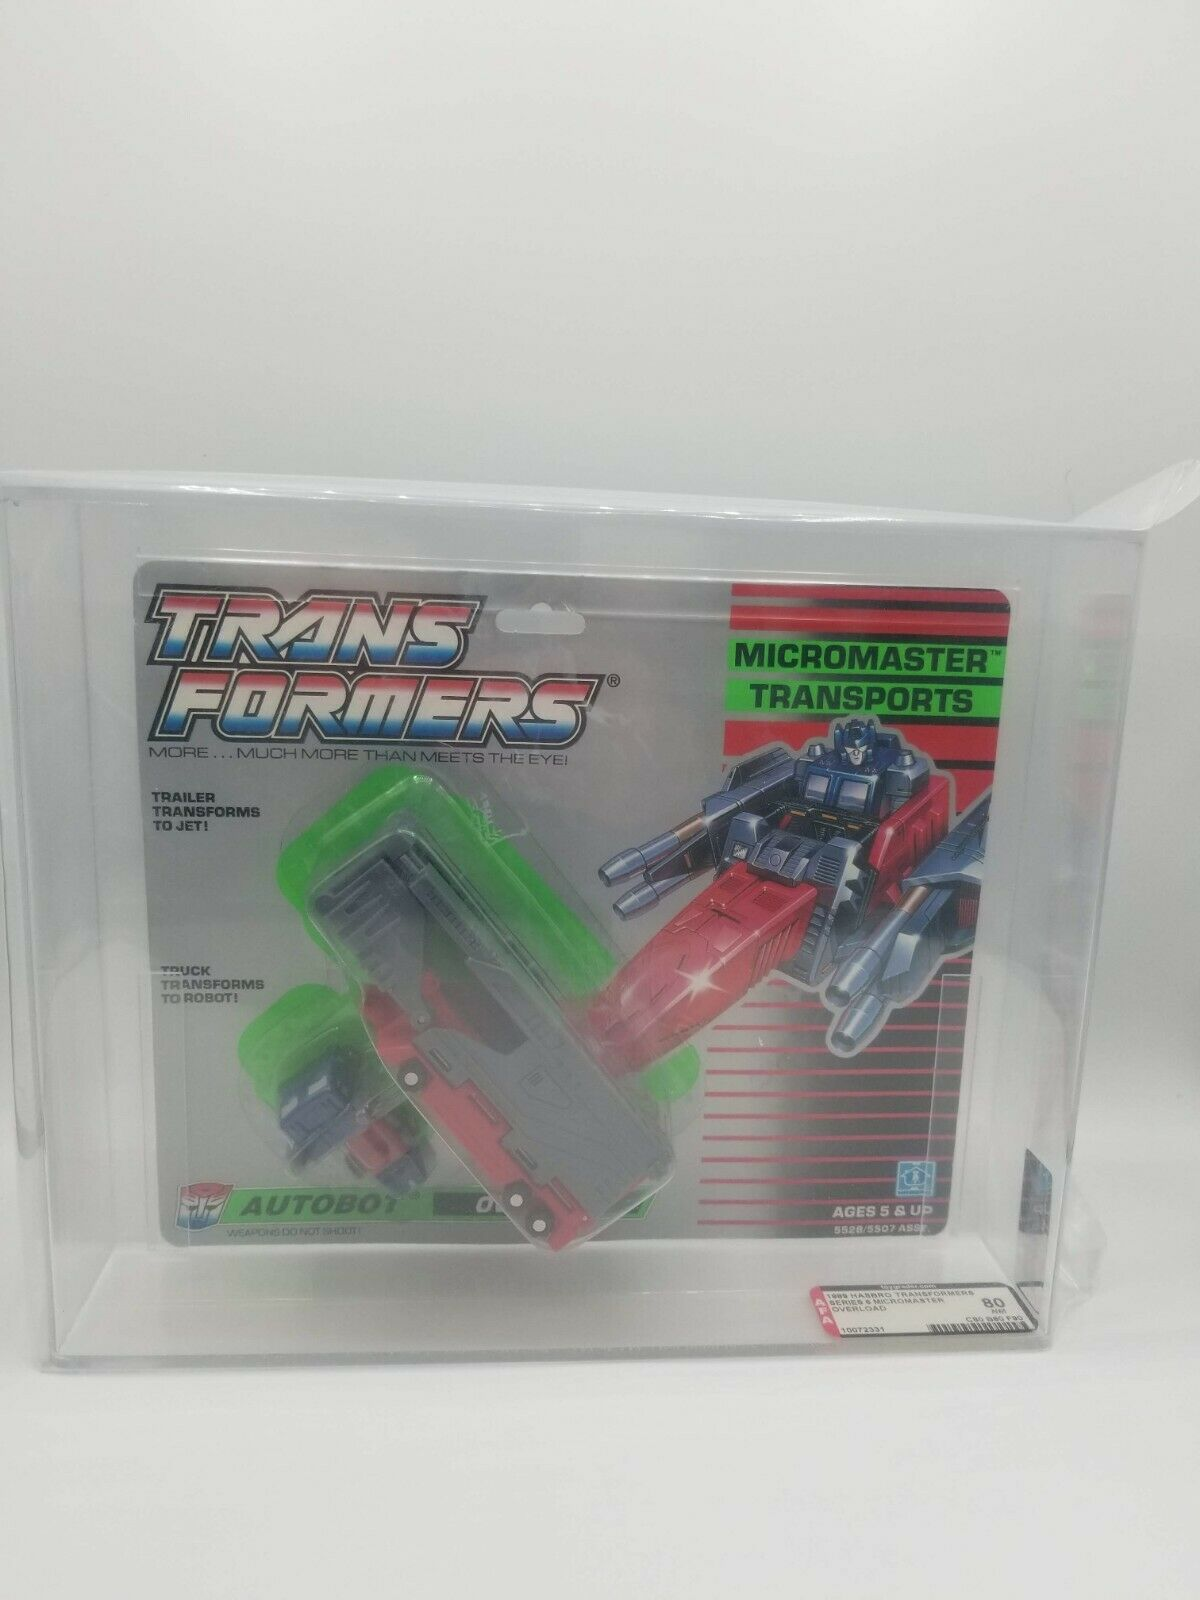 Transformers Overload Generation 1 Micromaster Transports AFA Graded 80 1989